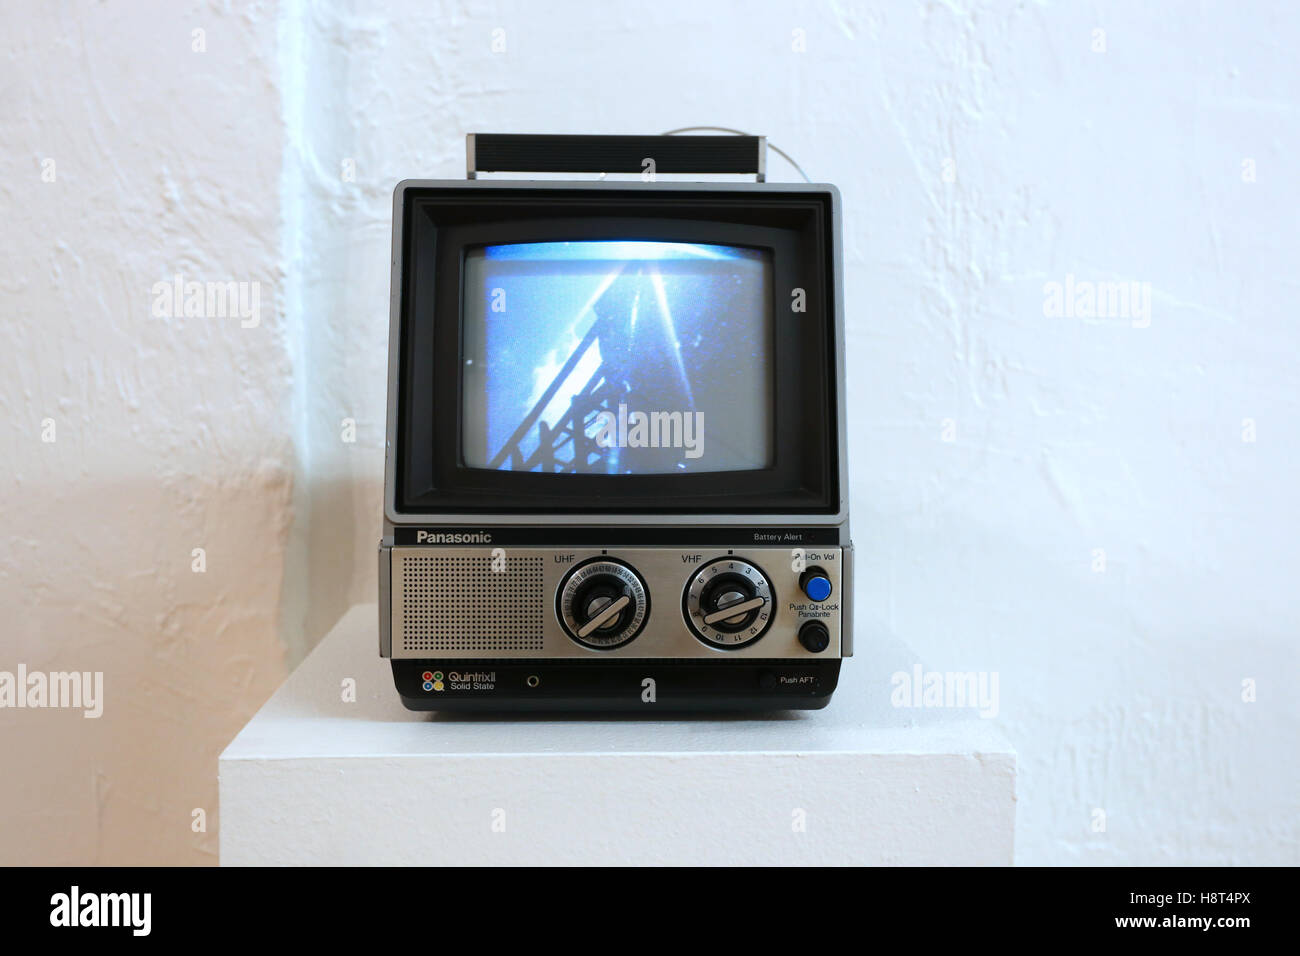 Analog TV set - Stock Image